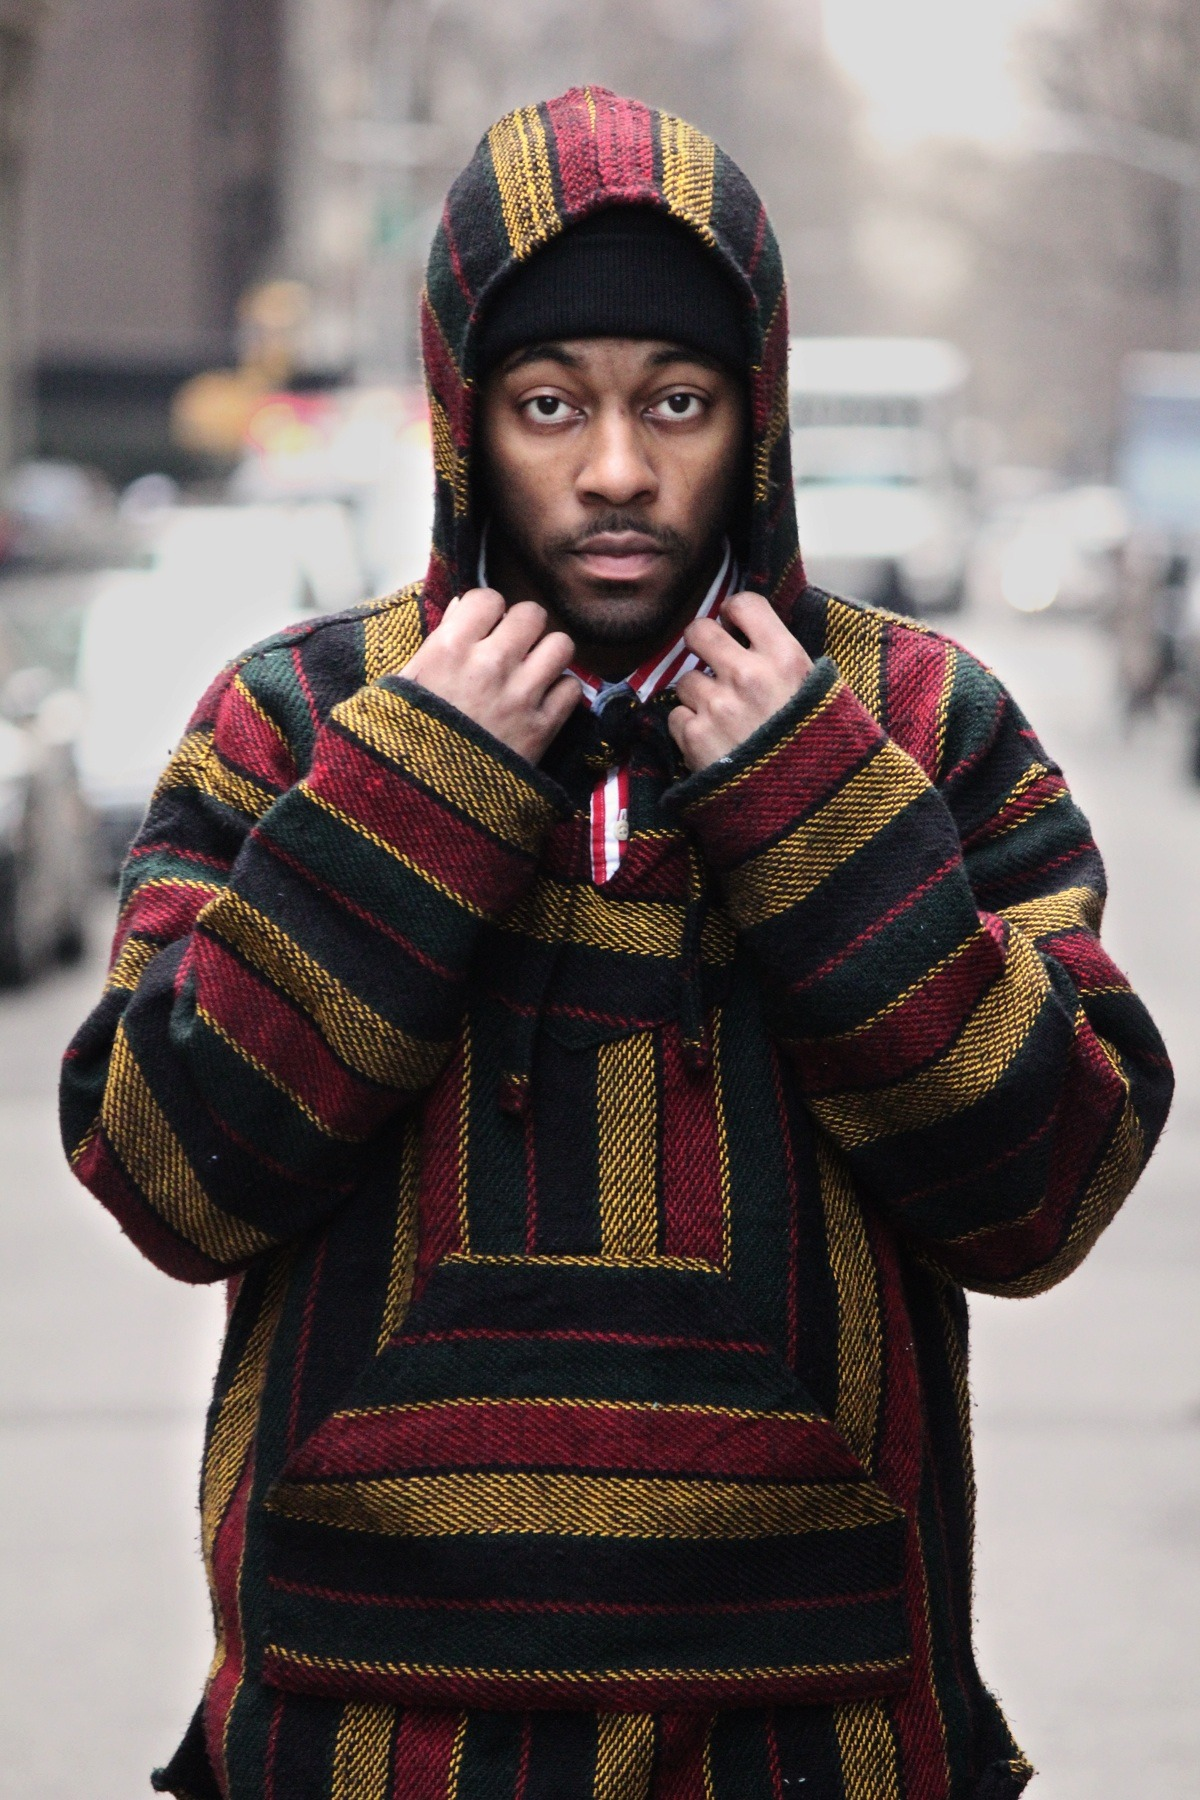 blackfashion:  Nino skyz  Soho (new York ) Ig: ninoskyz  @ninoskyz Photographed by @aagdolla  Ynrsia.tumblr.com Aagdolla.tumblr.com